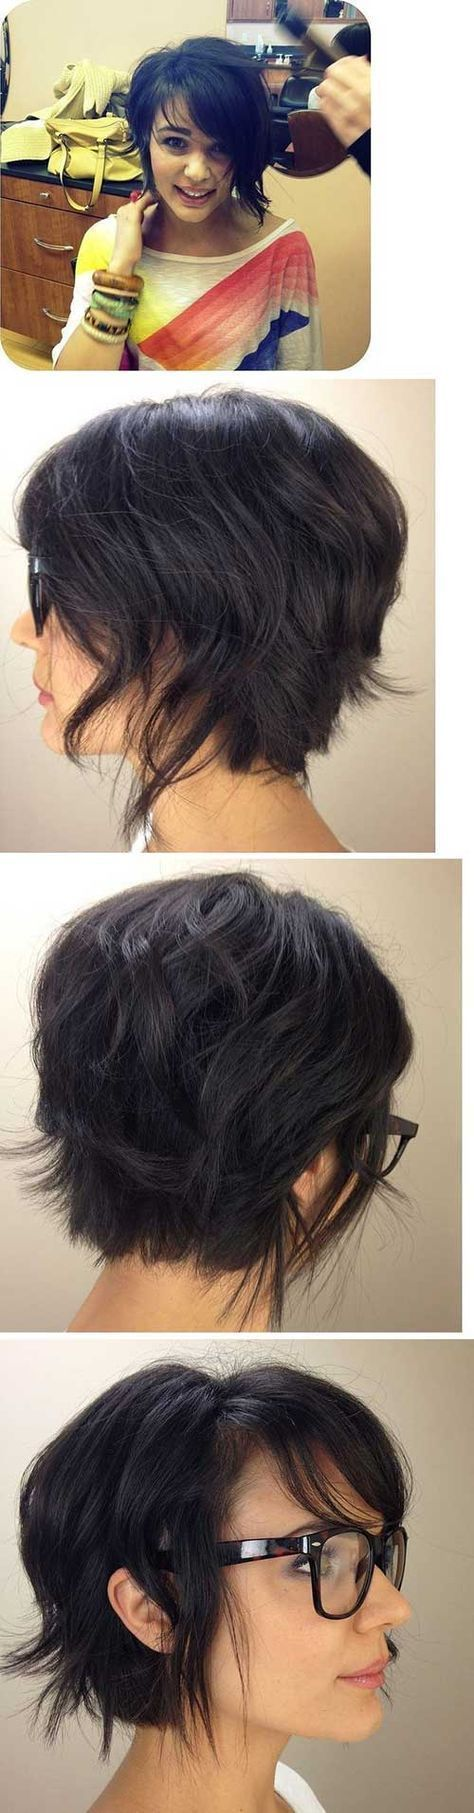 25 Short Hair Styles to Make Heads Turn – #gestuft…